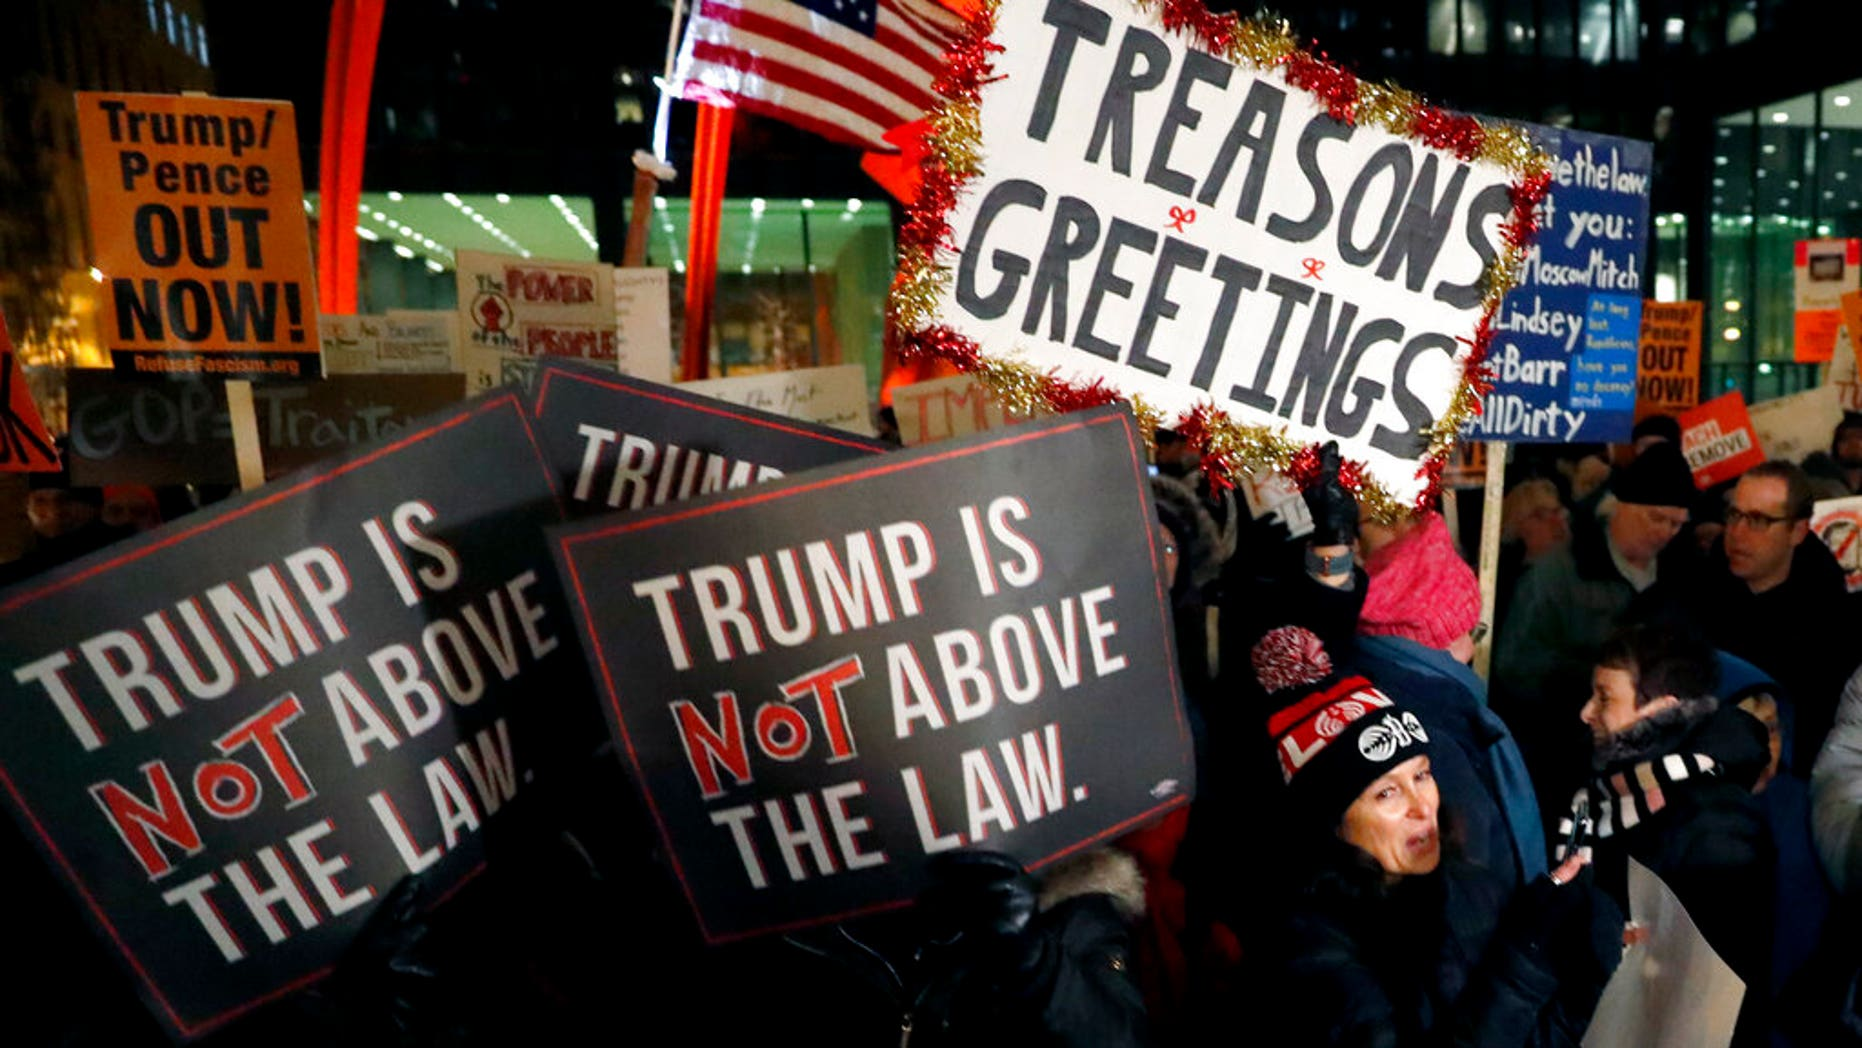 A crowd gathers on Federal Plaza for a protest against President Donald Trump on the eve of a scheduled vote by the US House of Representatives on the two articles of impeachment against the president Tuesday, Dec. 17, 2019, in Chicago. (AP Photo/Charles Rex Arbogast)